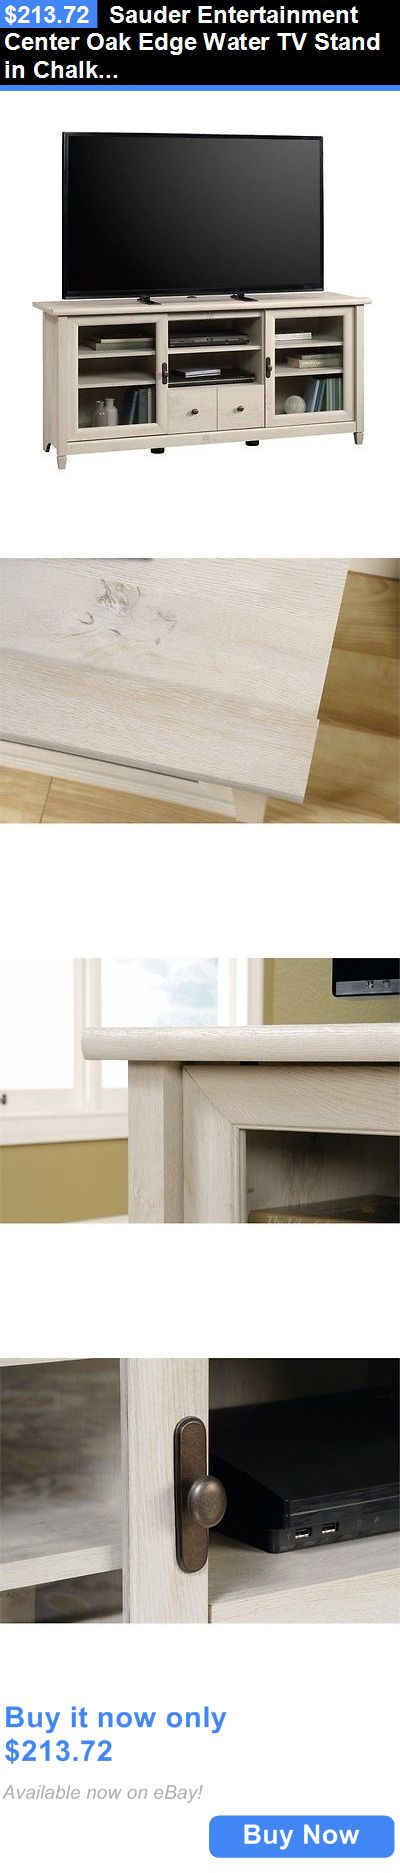 Entertainment Units TV Stands: Sauder Entertainment Center Oak Edge Water Tv Stand In Chalked Chestnut BUY IT NOW ONLY: $213.72